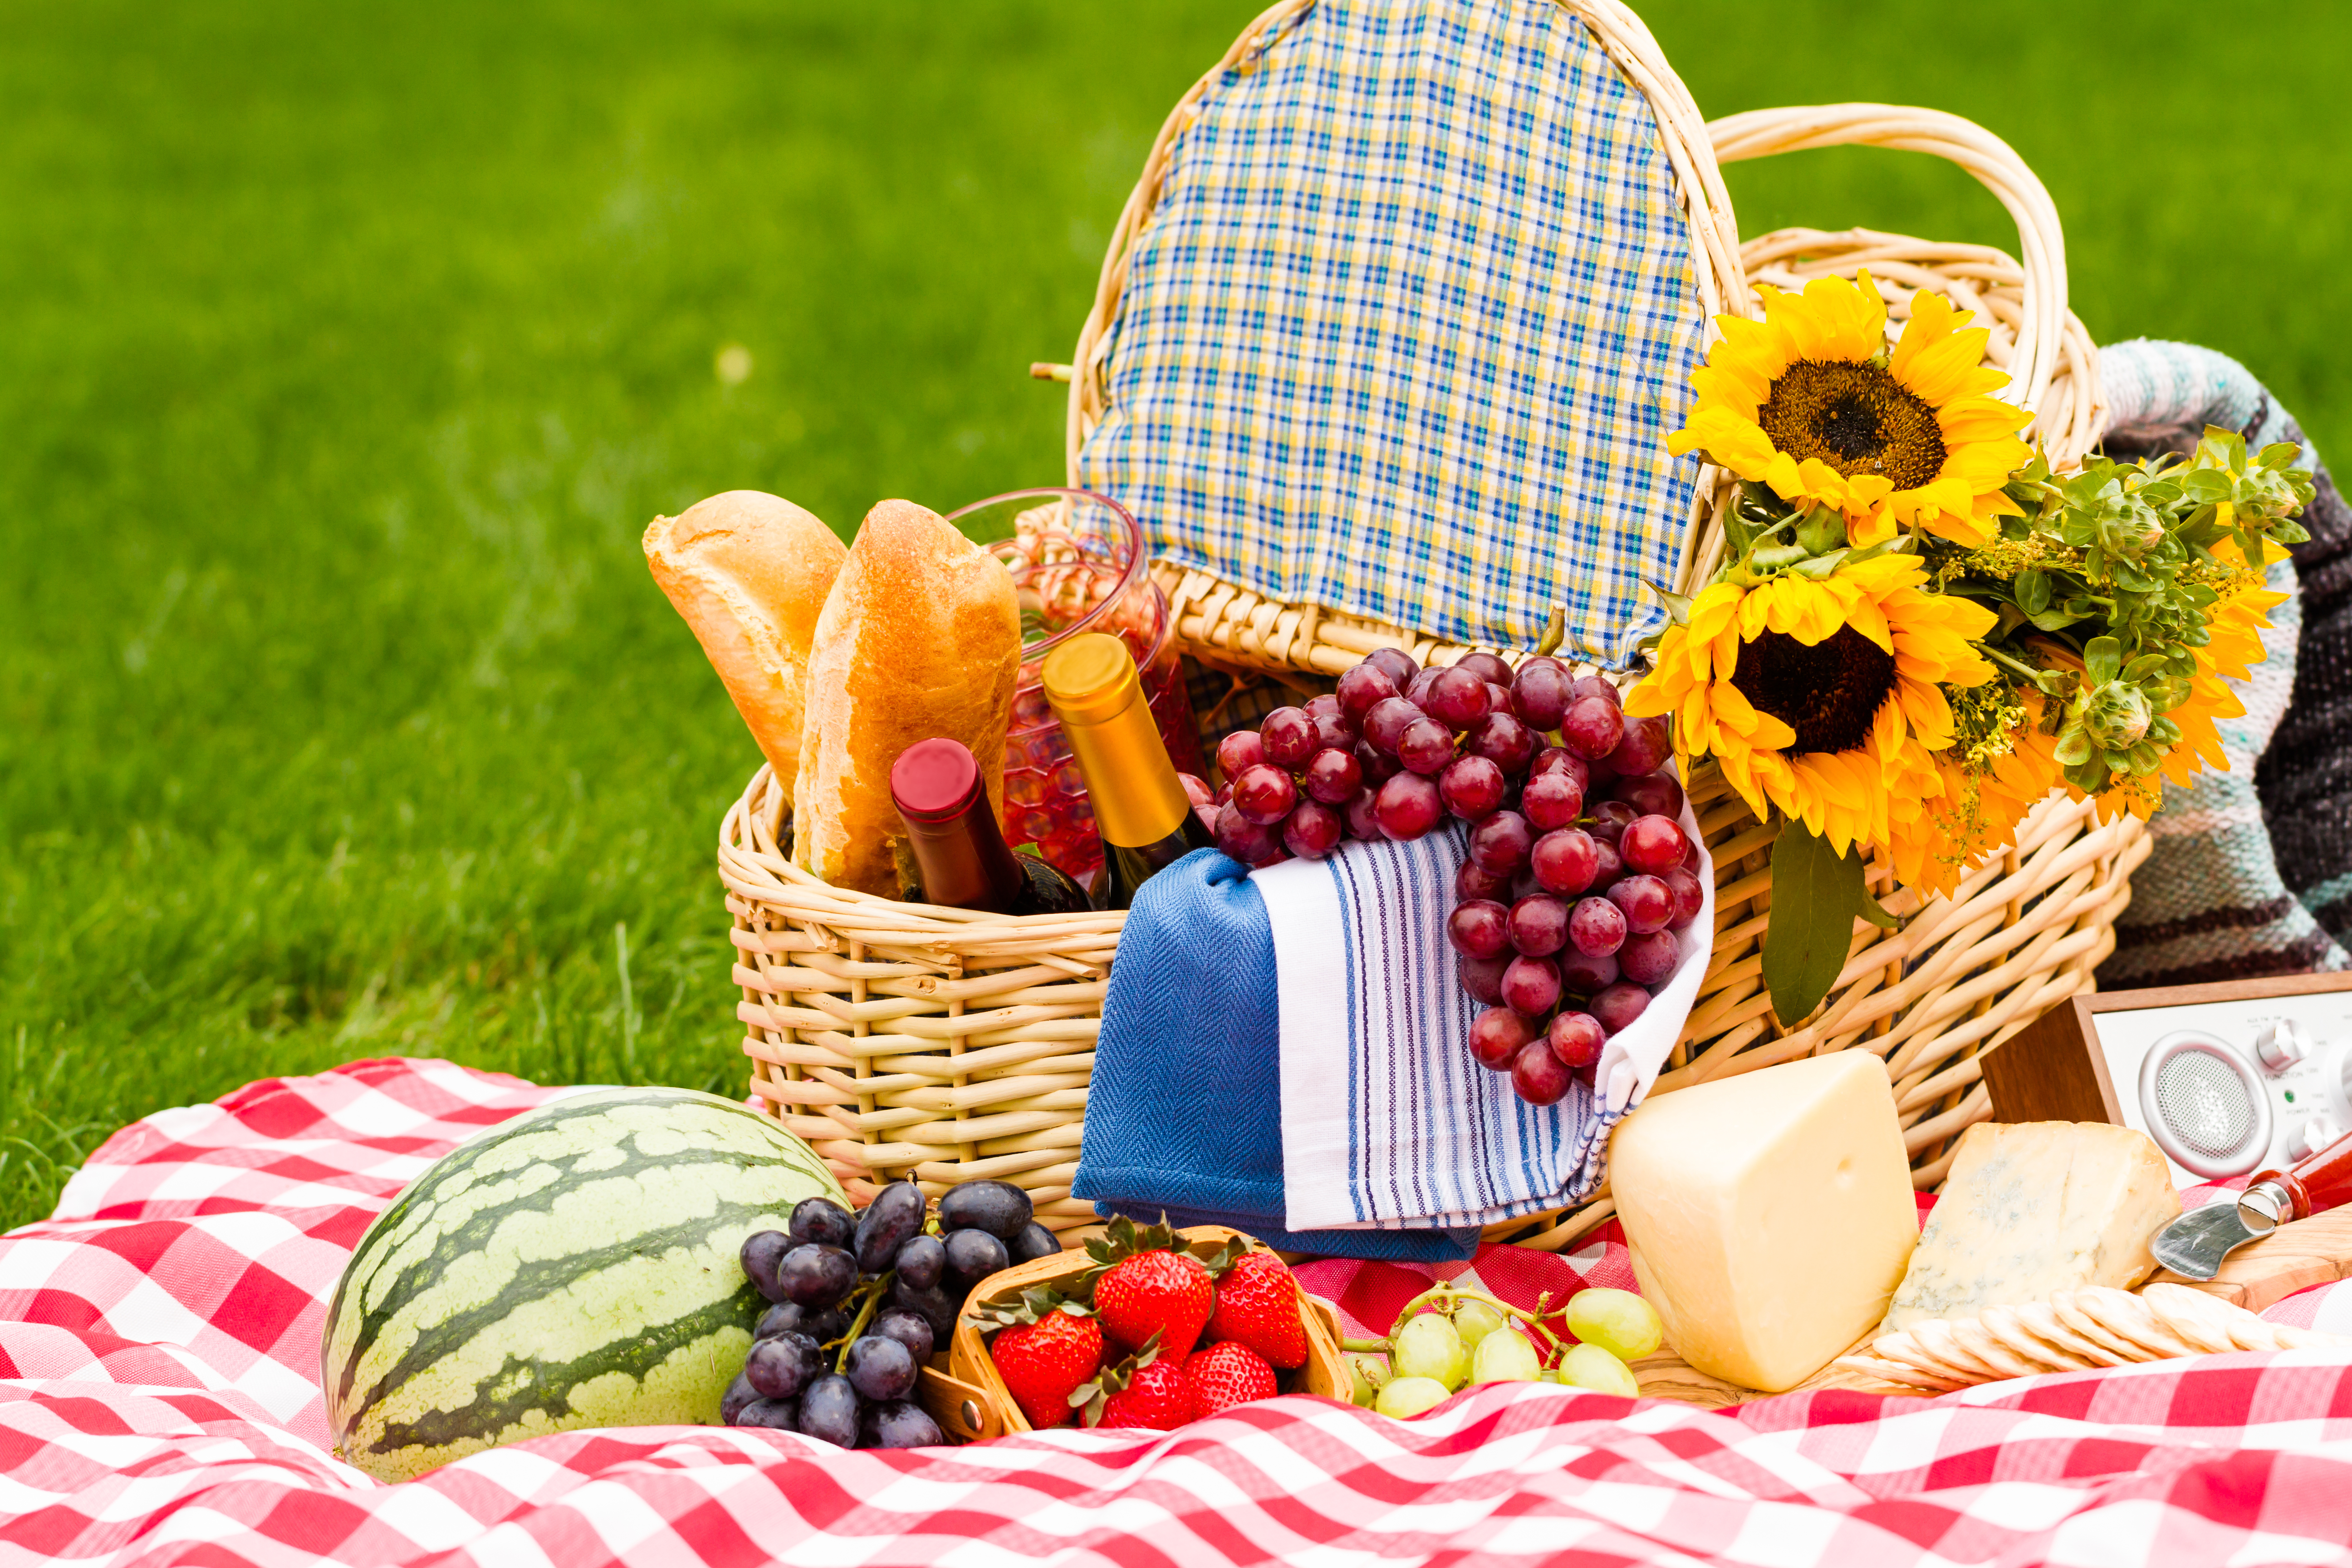 Picnic Food Ideas Best Picnic Recipes The Old Farmer S Almanac